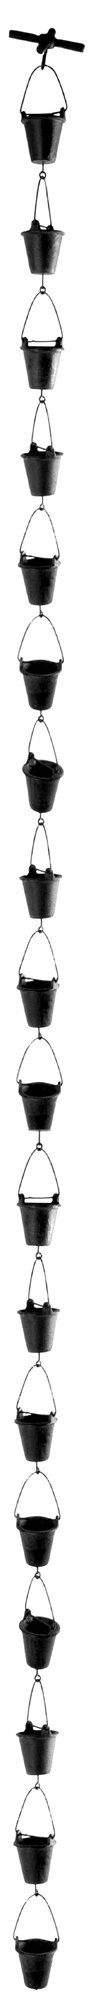 NACH (NACHB) XH-90-4580 Cast Iron Bucket Rain Chain, Rust